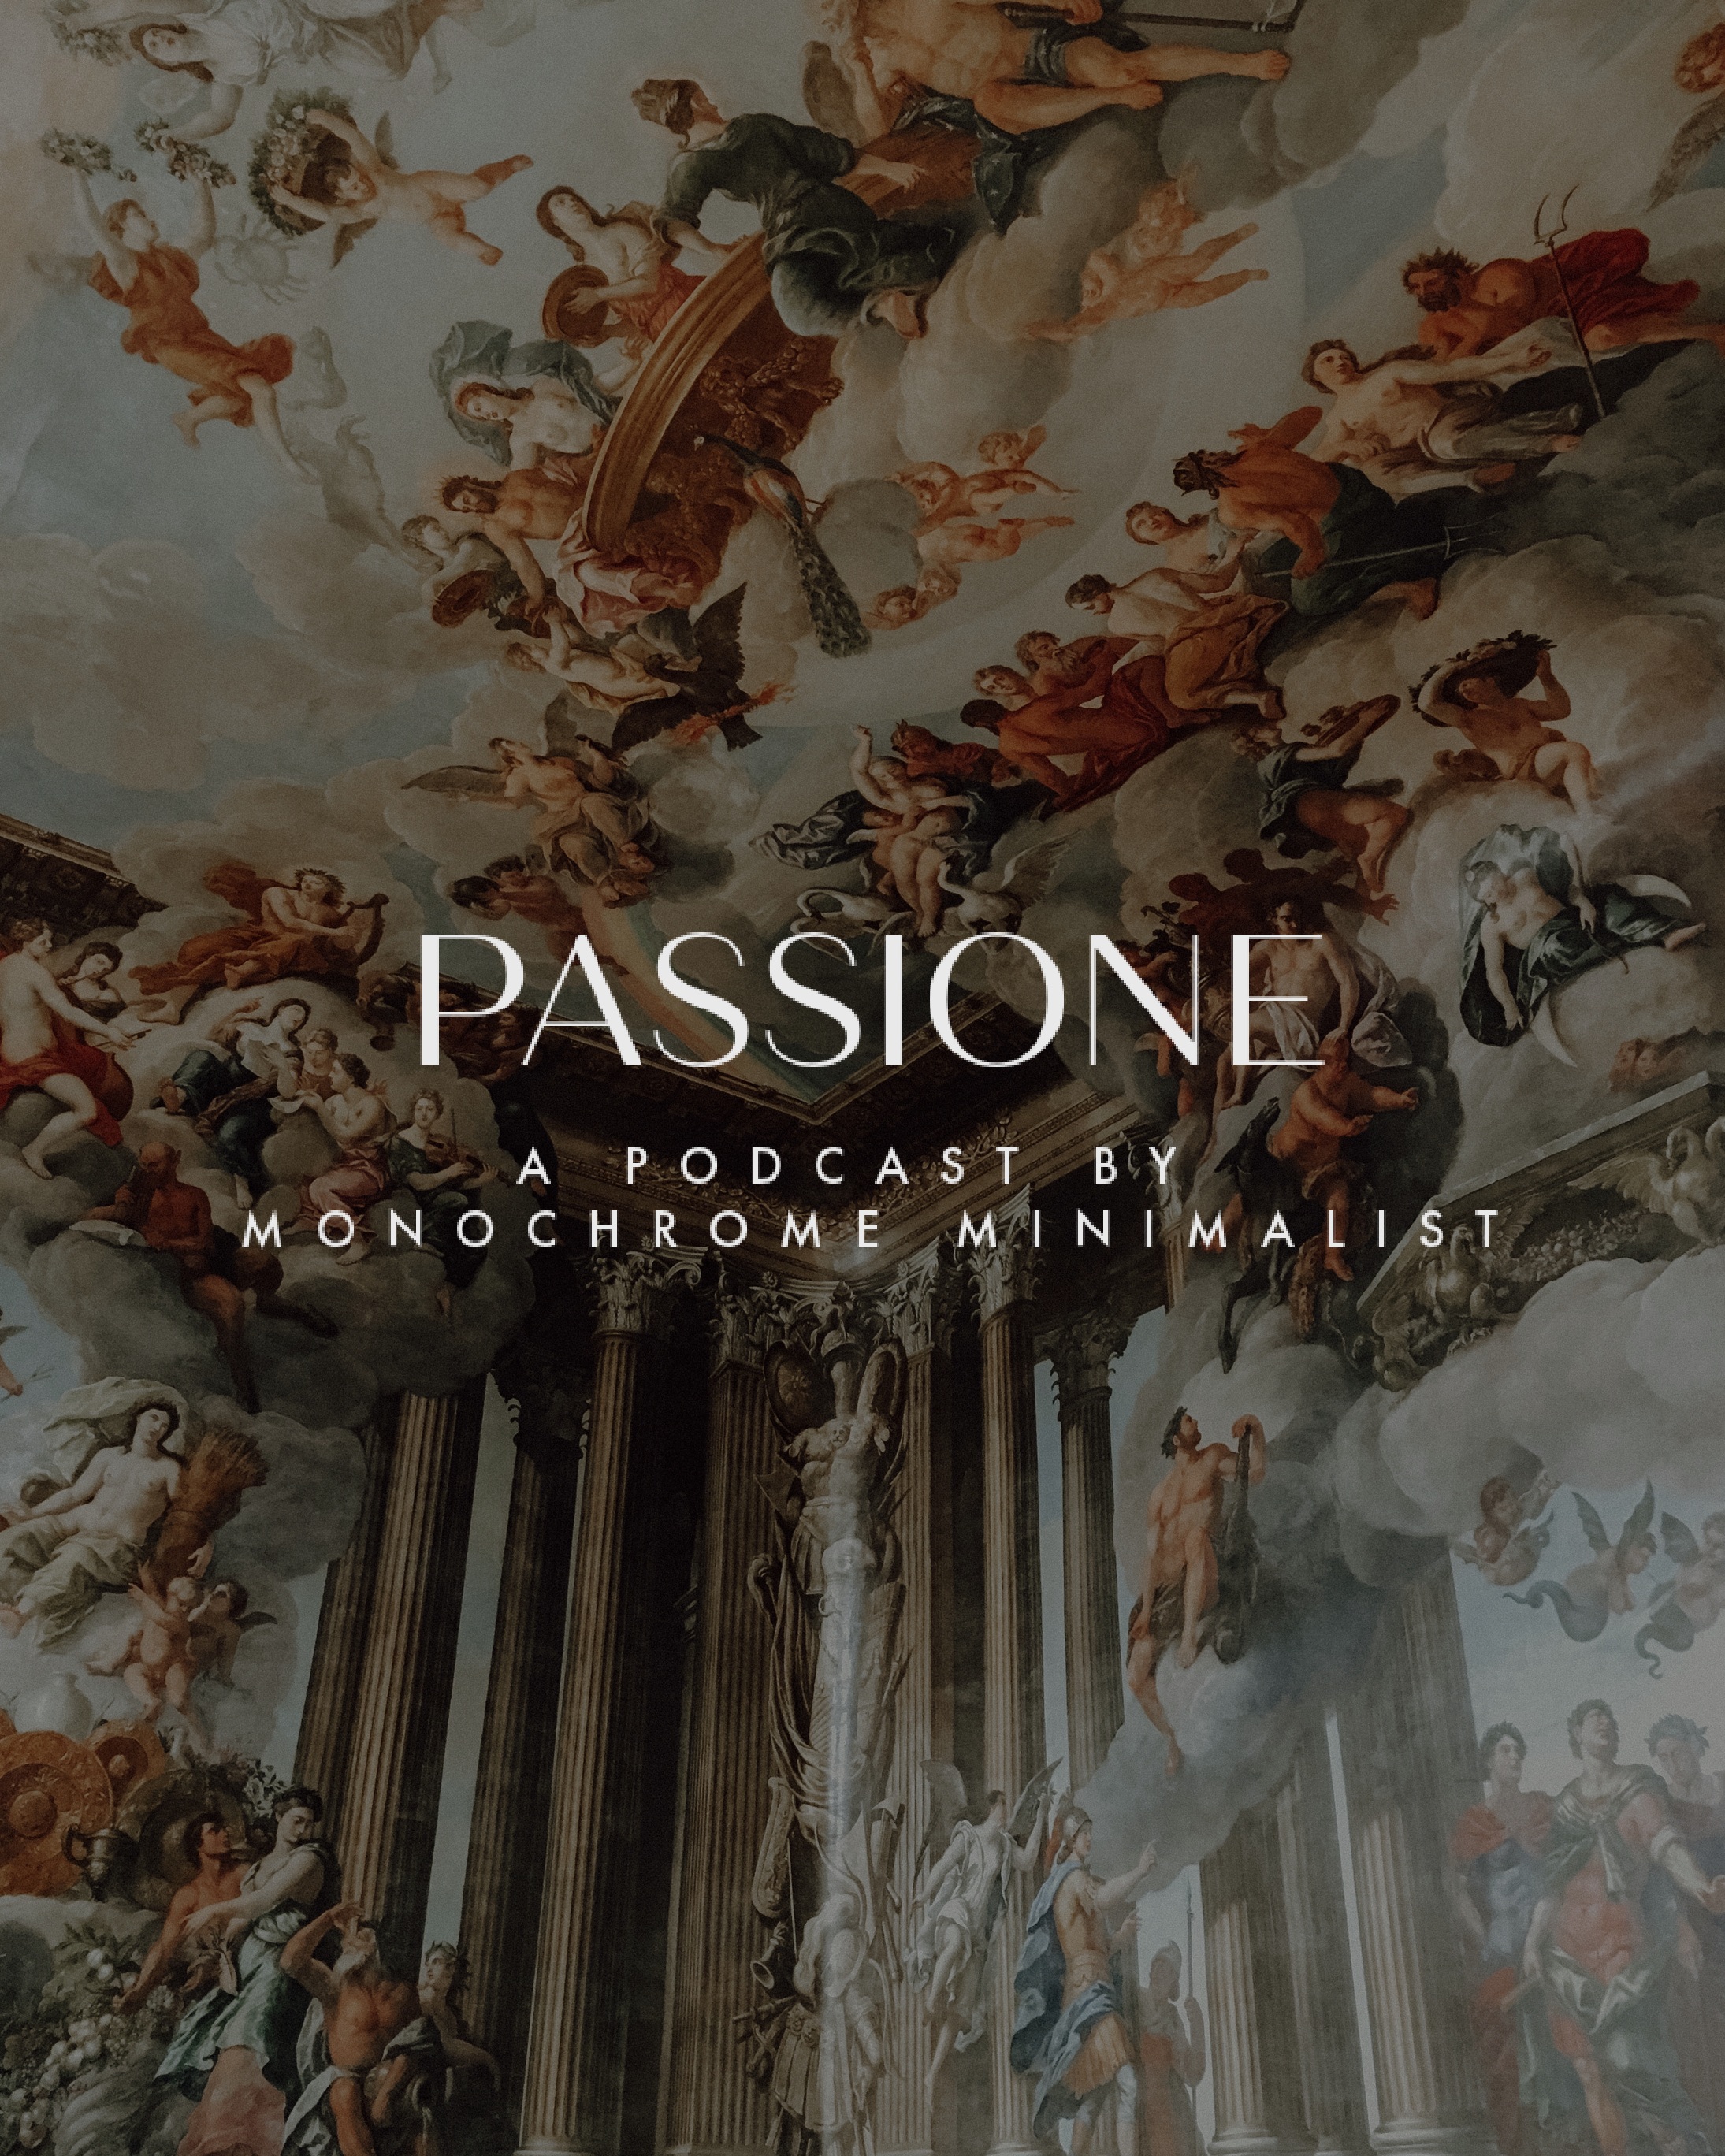 Passione the Podcast full text logo